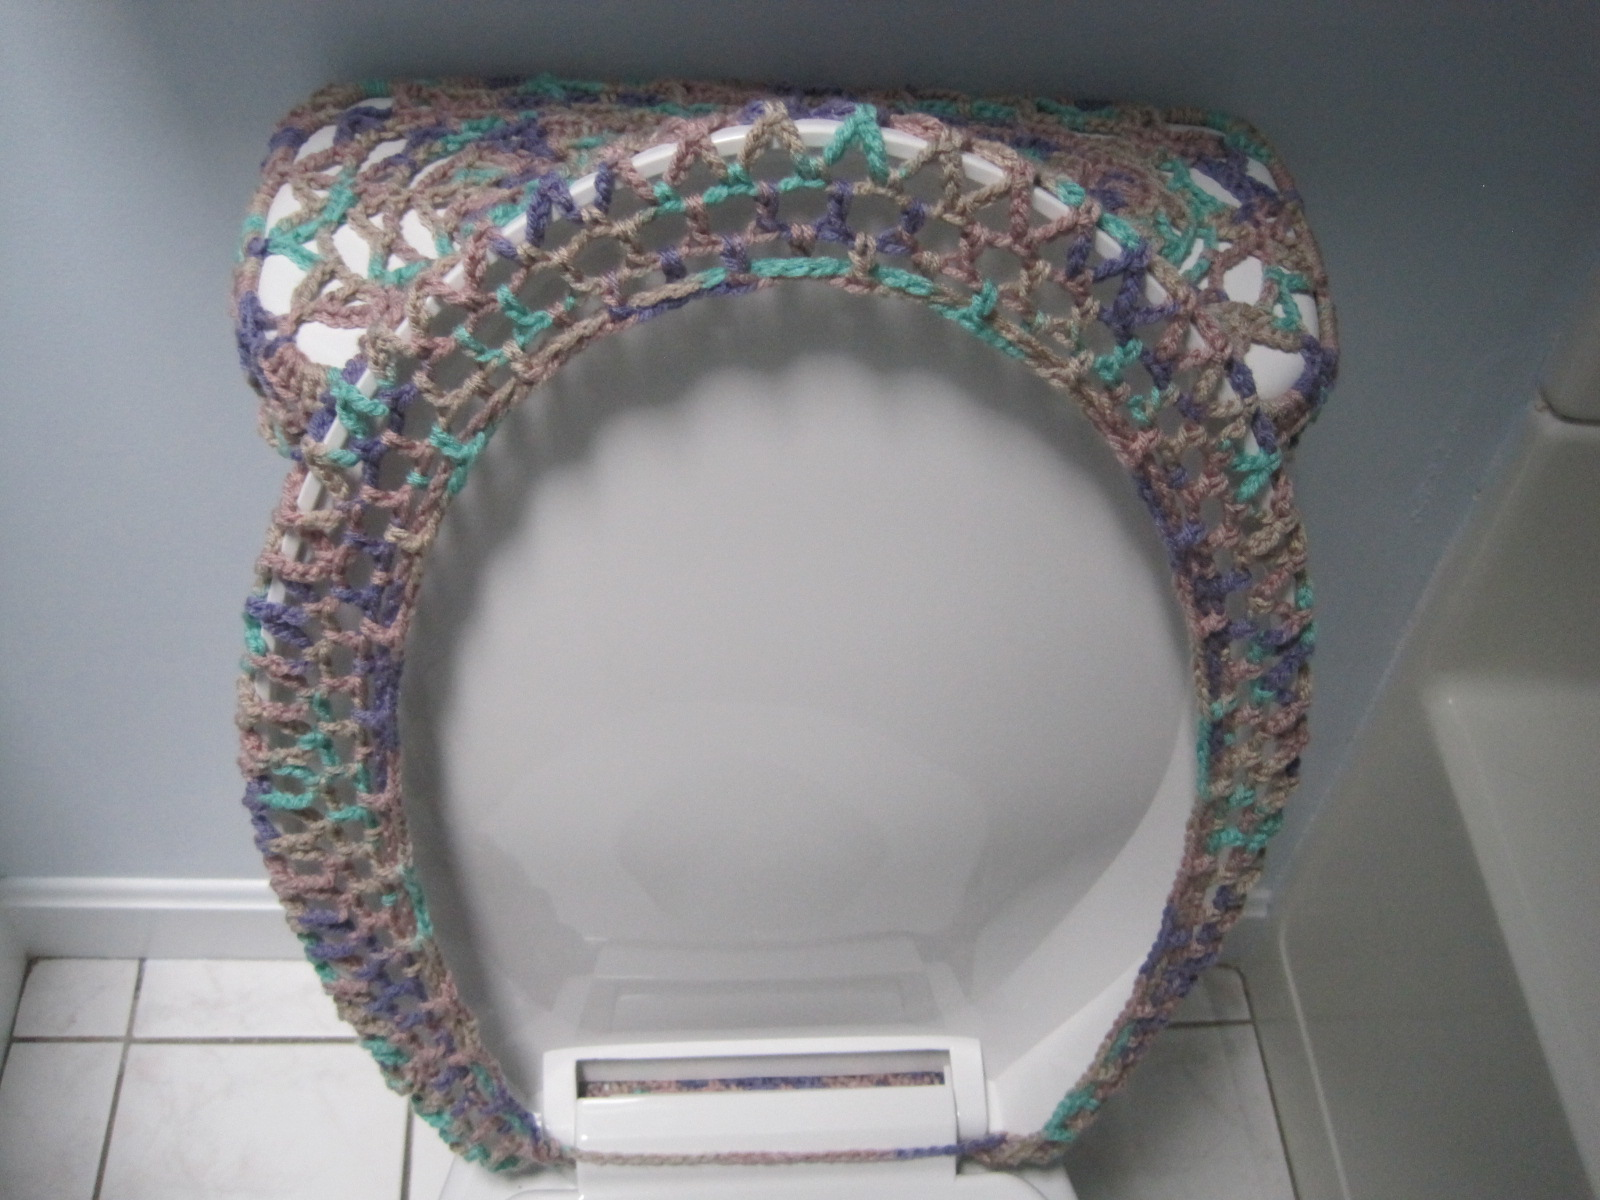 turquoise toilet seat cover. Crochet Pattern  Toilet Seat Cover For Both Standard And Elongated Seats 4VC2012 on Luulla